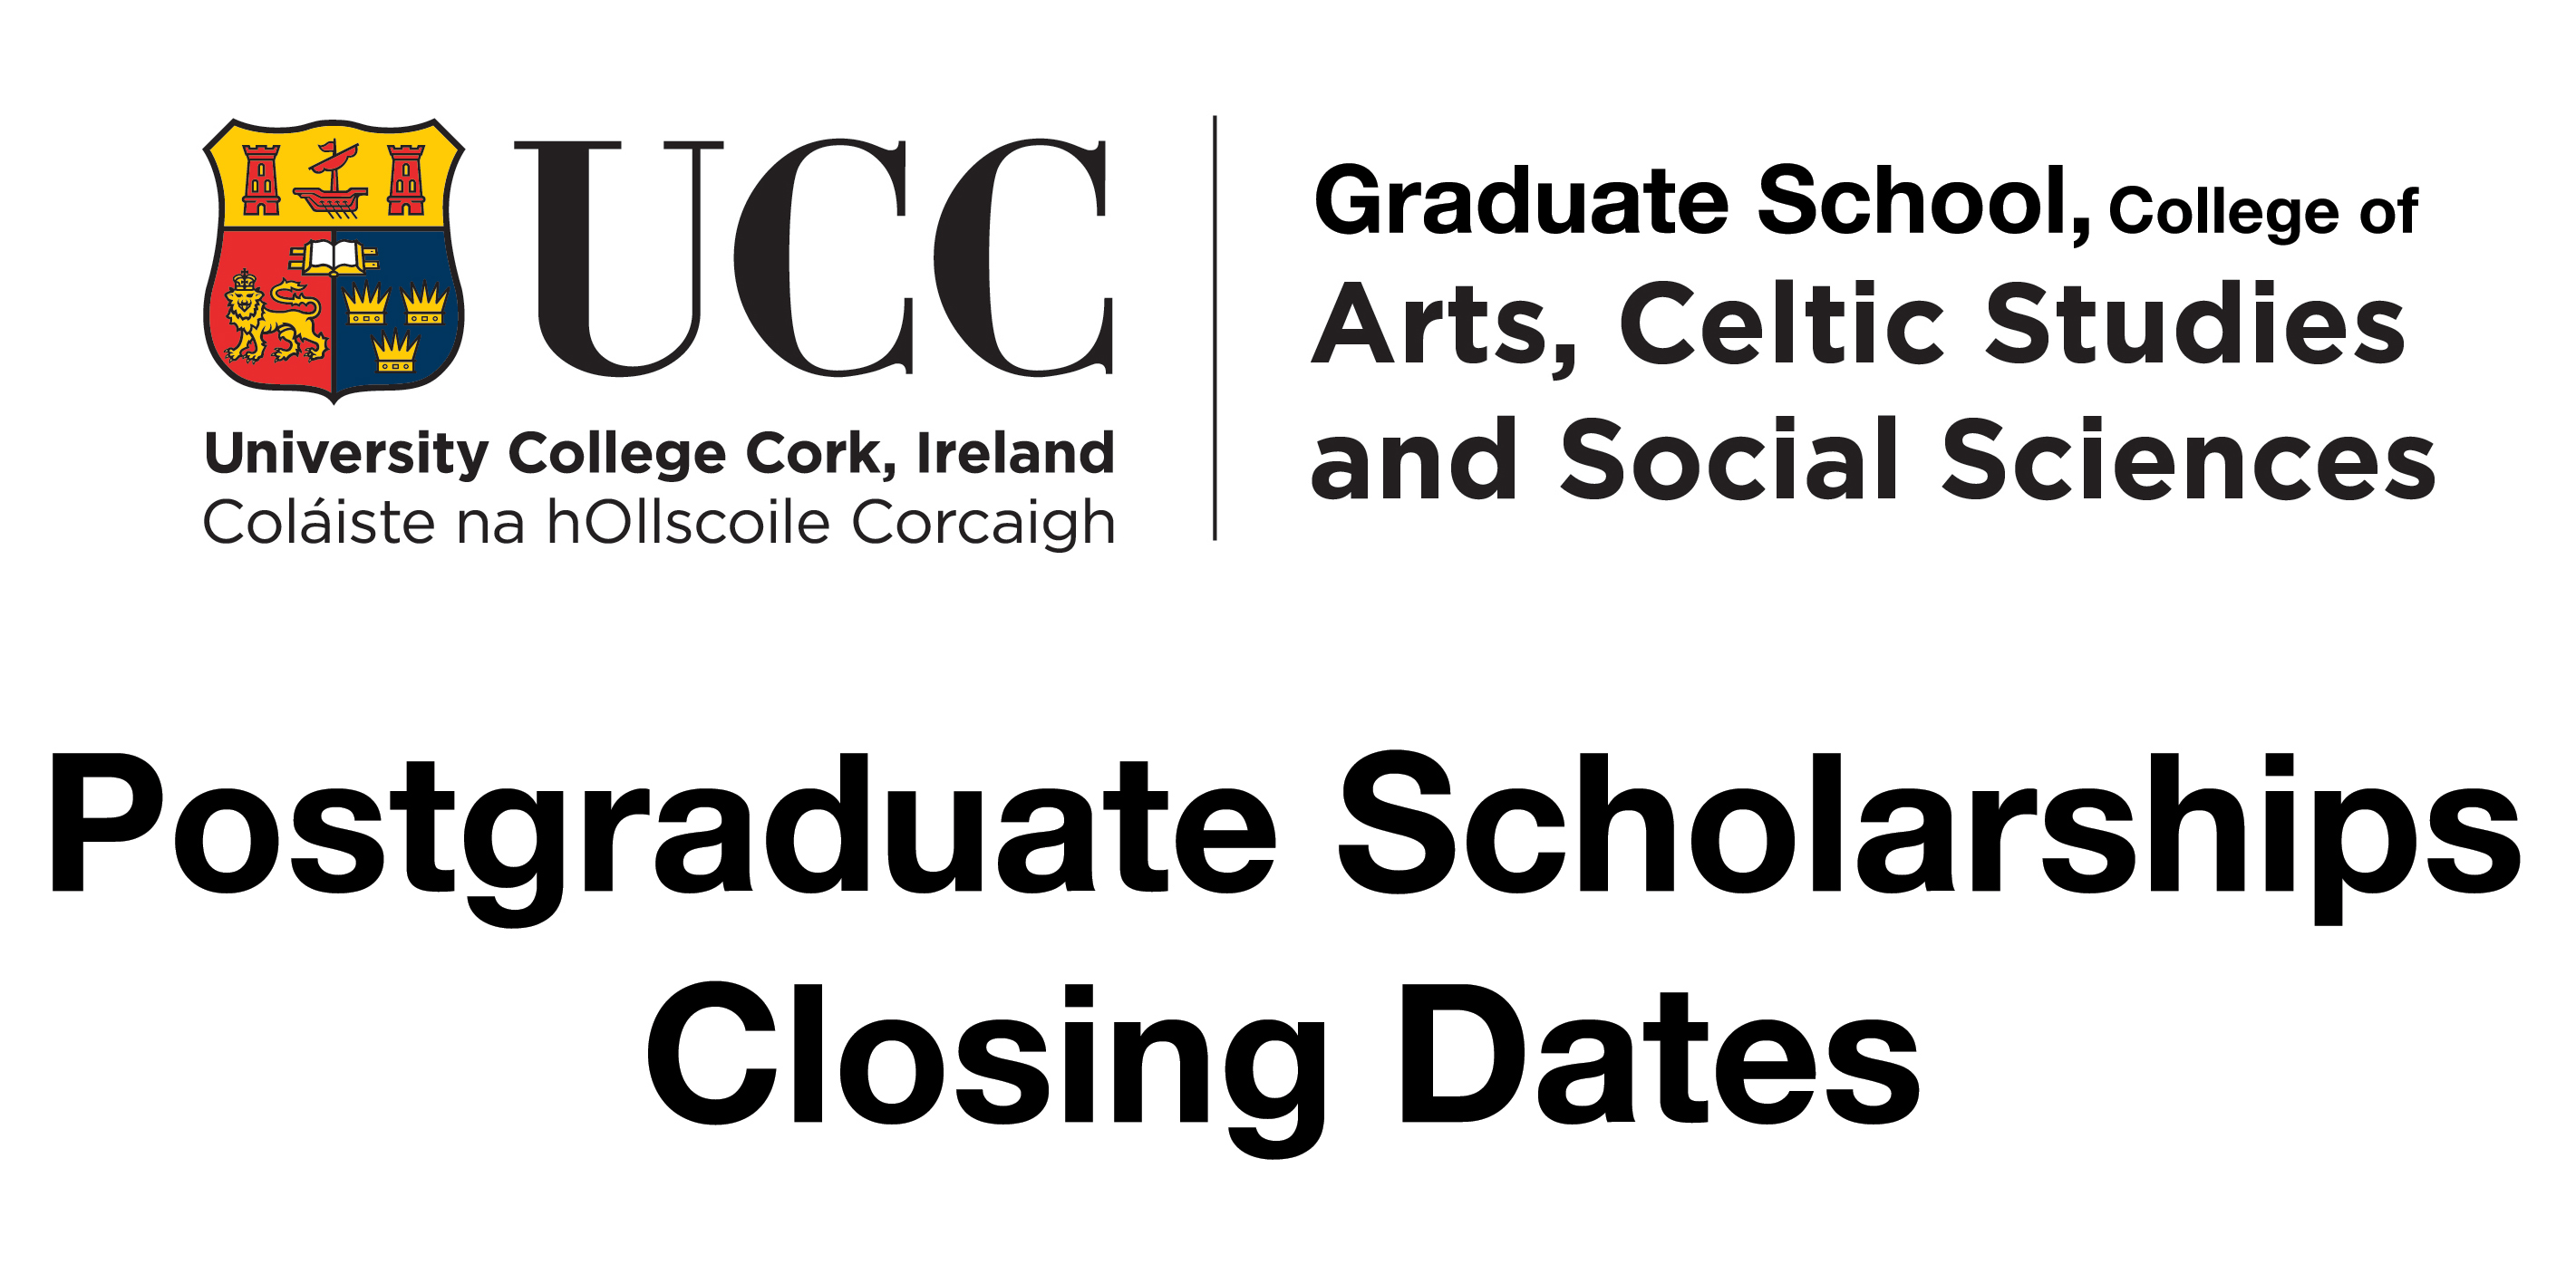 Postgraduate Scholarships closing dates reminder.